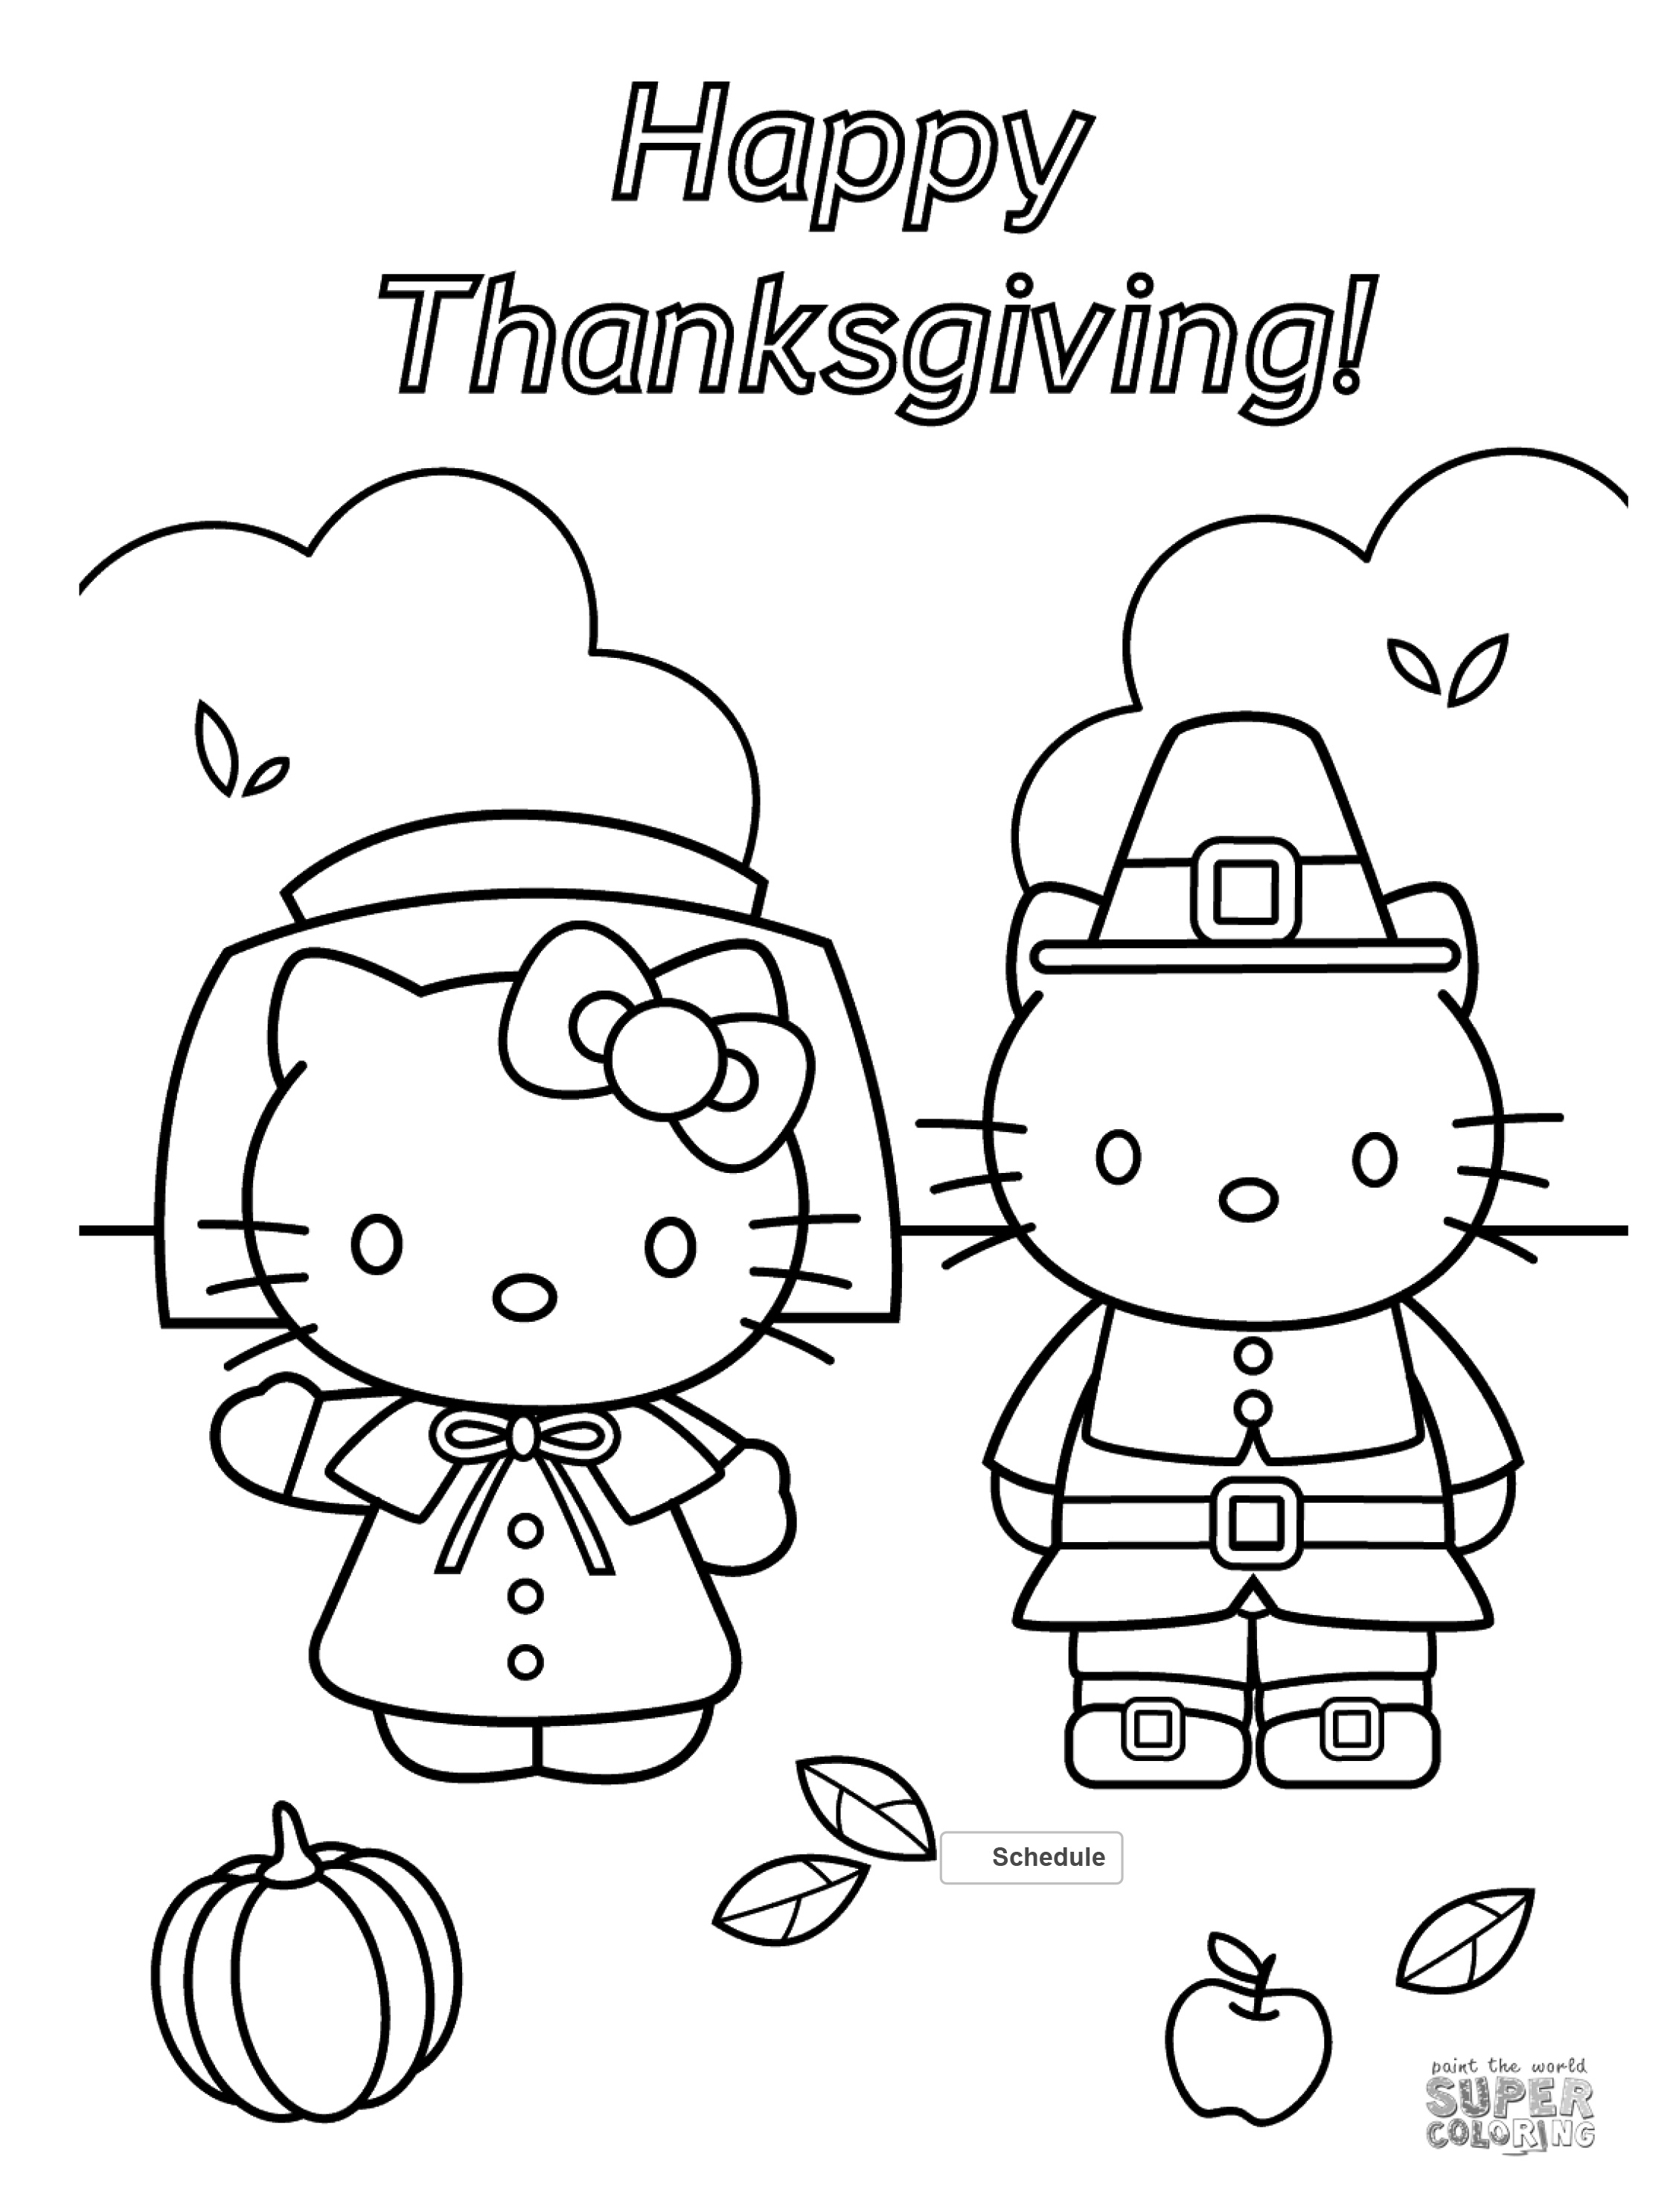 FREE Thanksgiving Coloring Pages for Adults & Kids ...